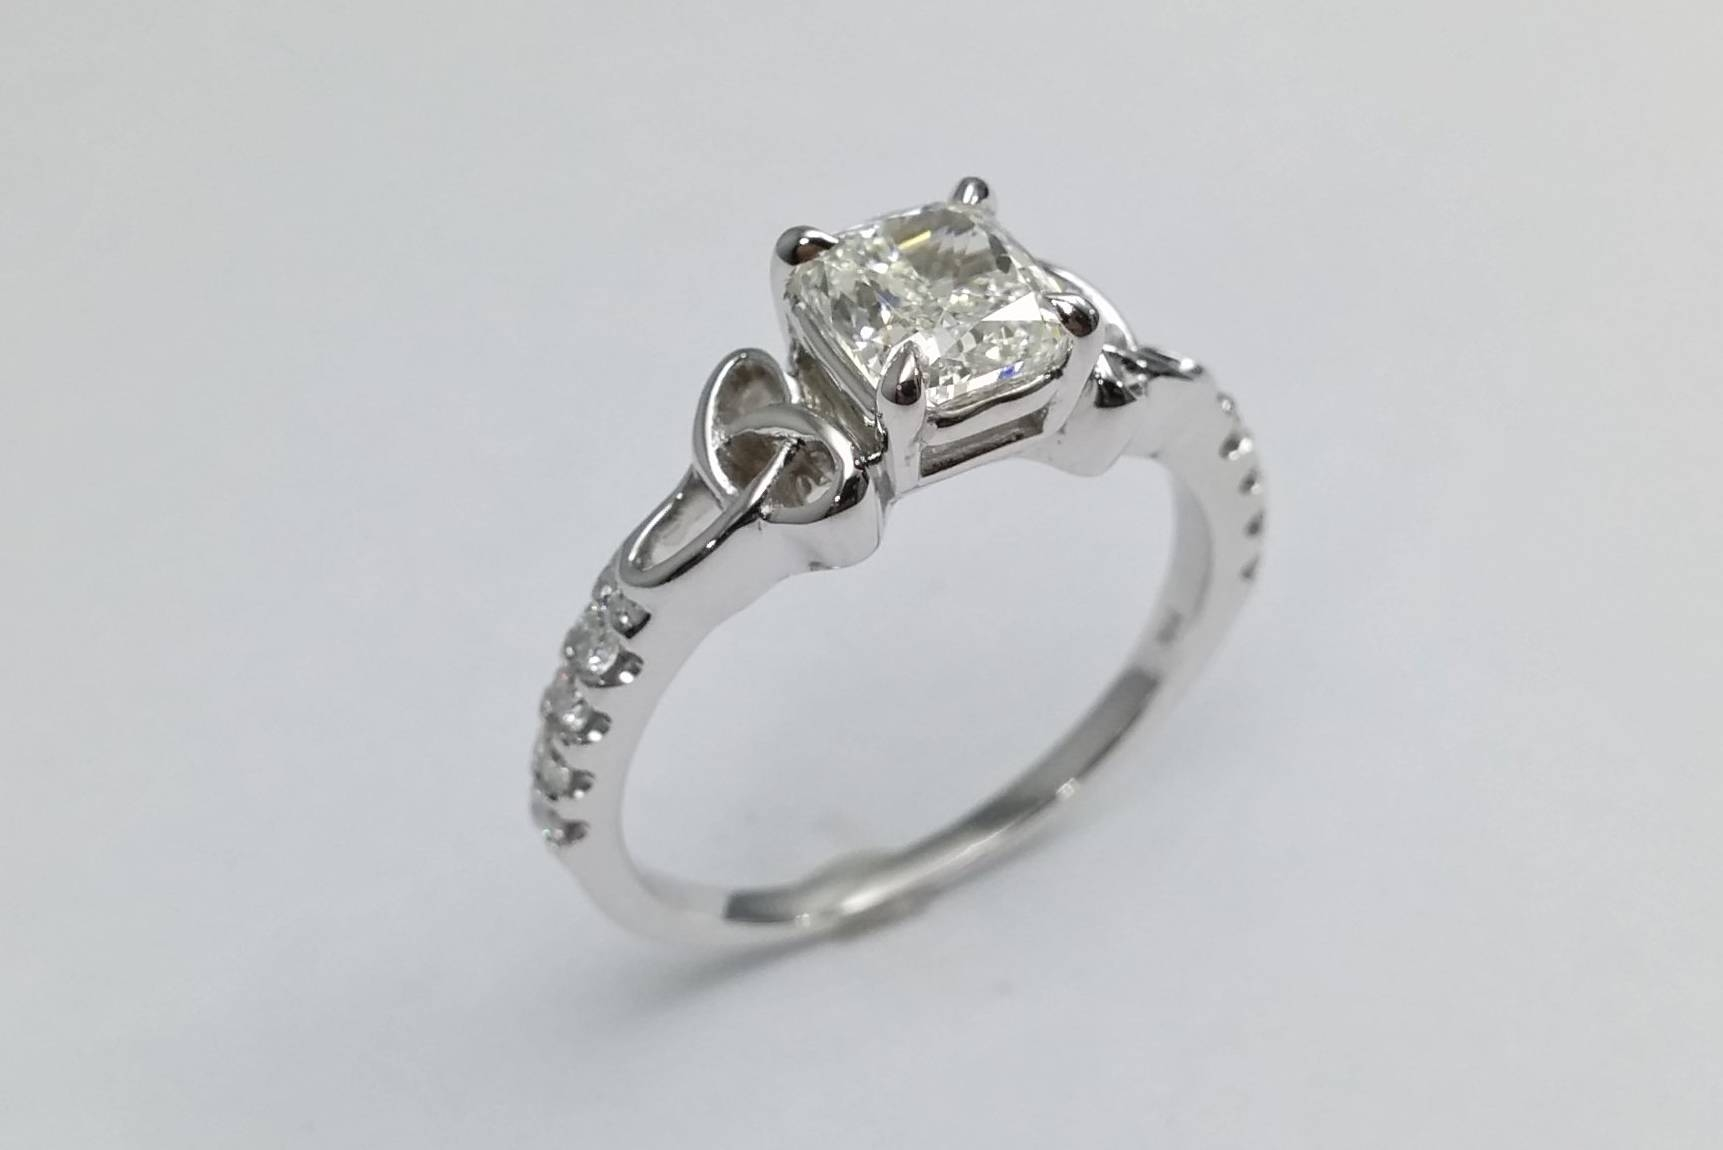 Celtic – Engagement Rings From Mdc Diamonds Nyc With Regard To Celtic Engagement Rings (View 6 of 15)